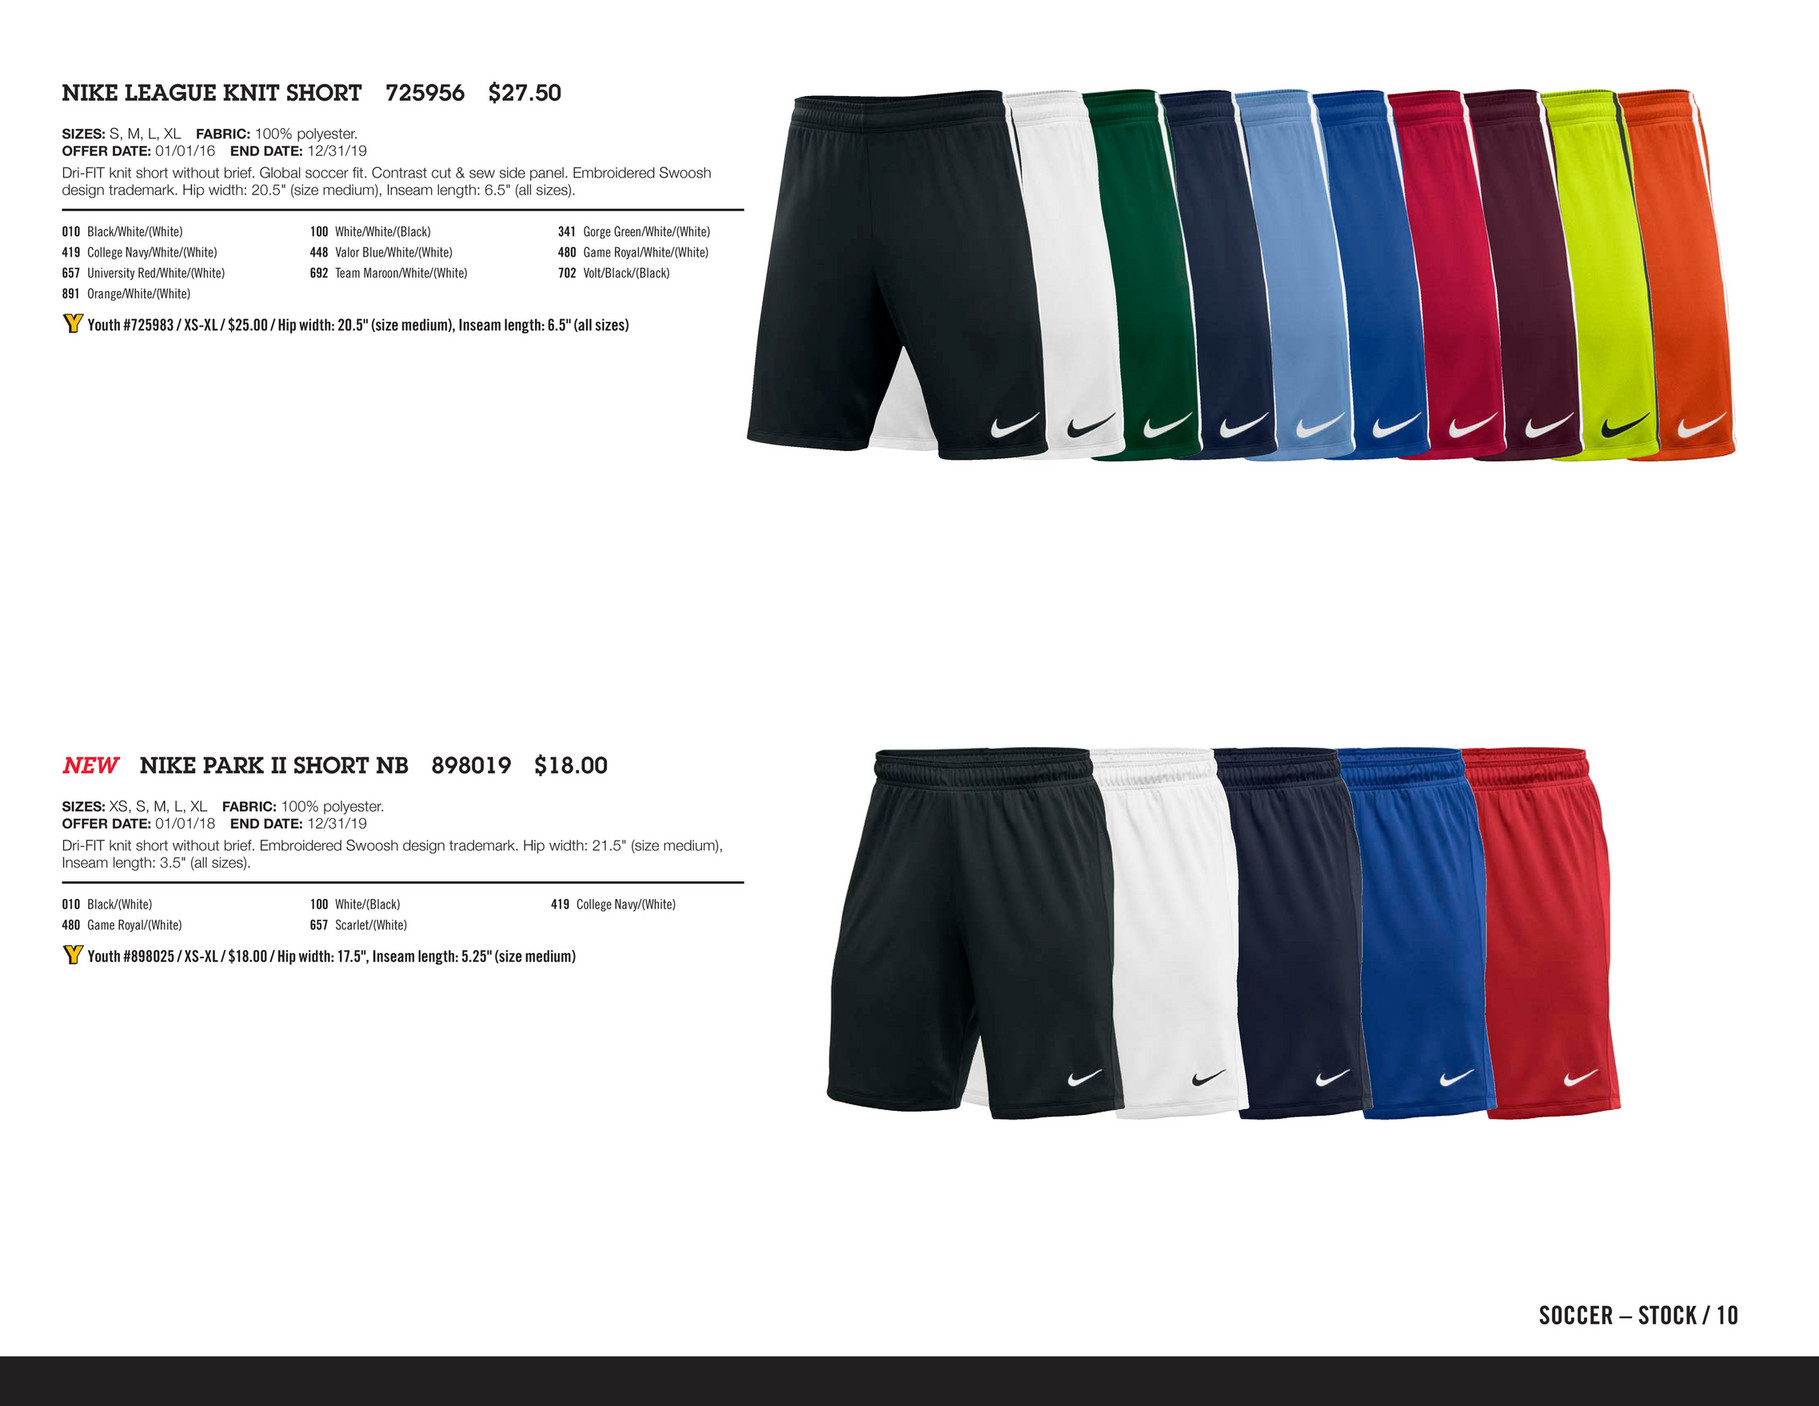 Johnny Mac's Sporting Goods - 2018 Nike Womens Soccer - Page 12 - Created  with Publitas.com